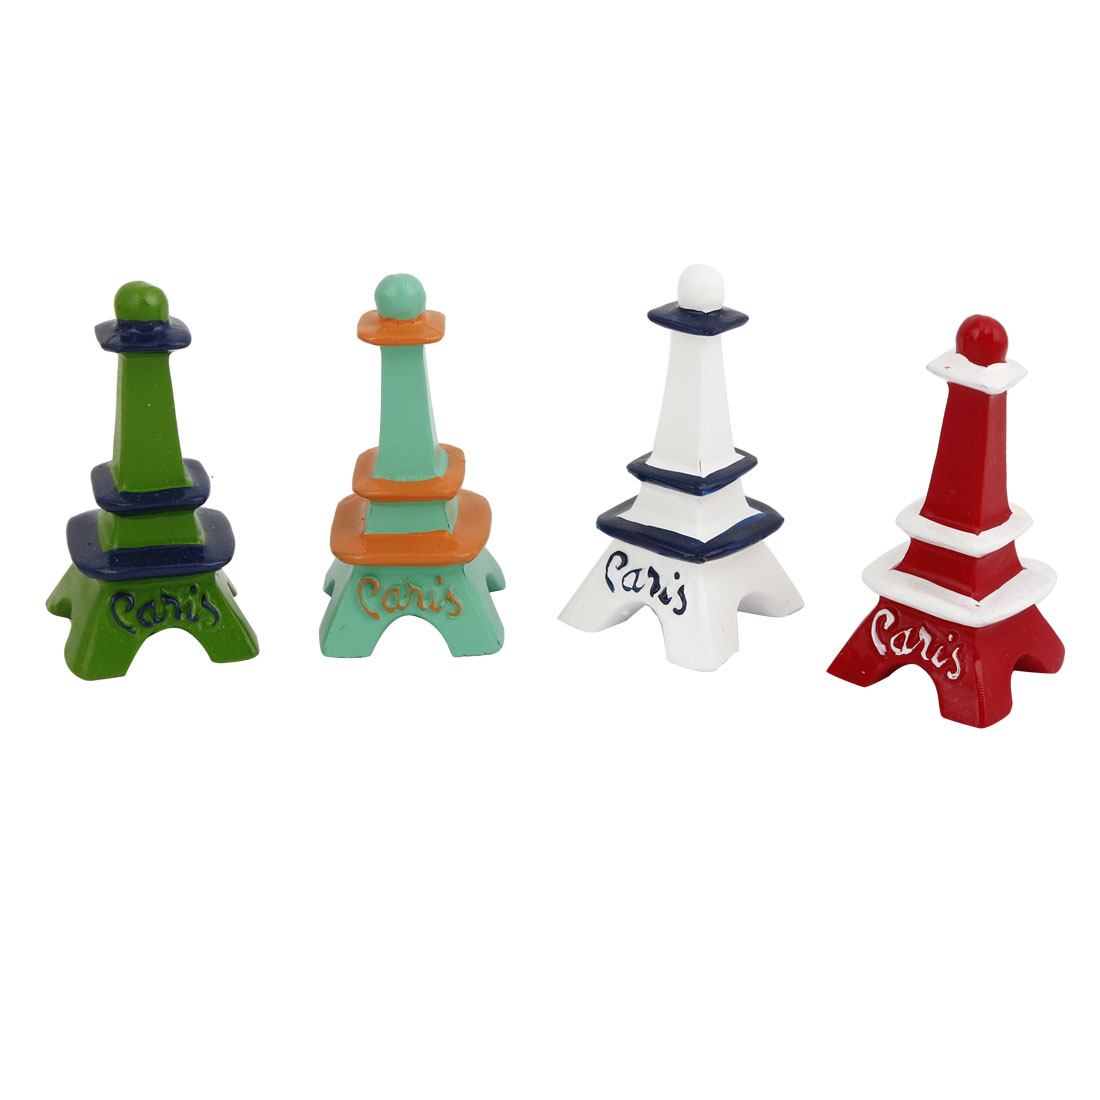 4 Pcs Festival Decor Craft Eiffel Tower Ornament Green Cyan White Red